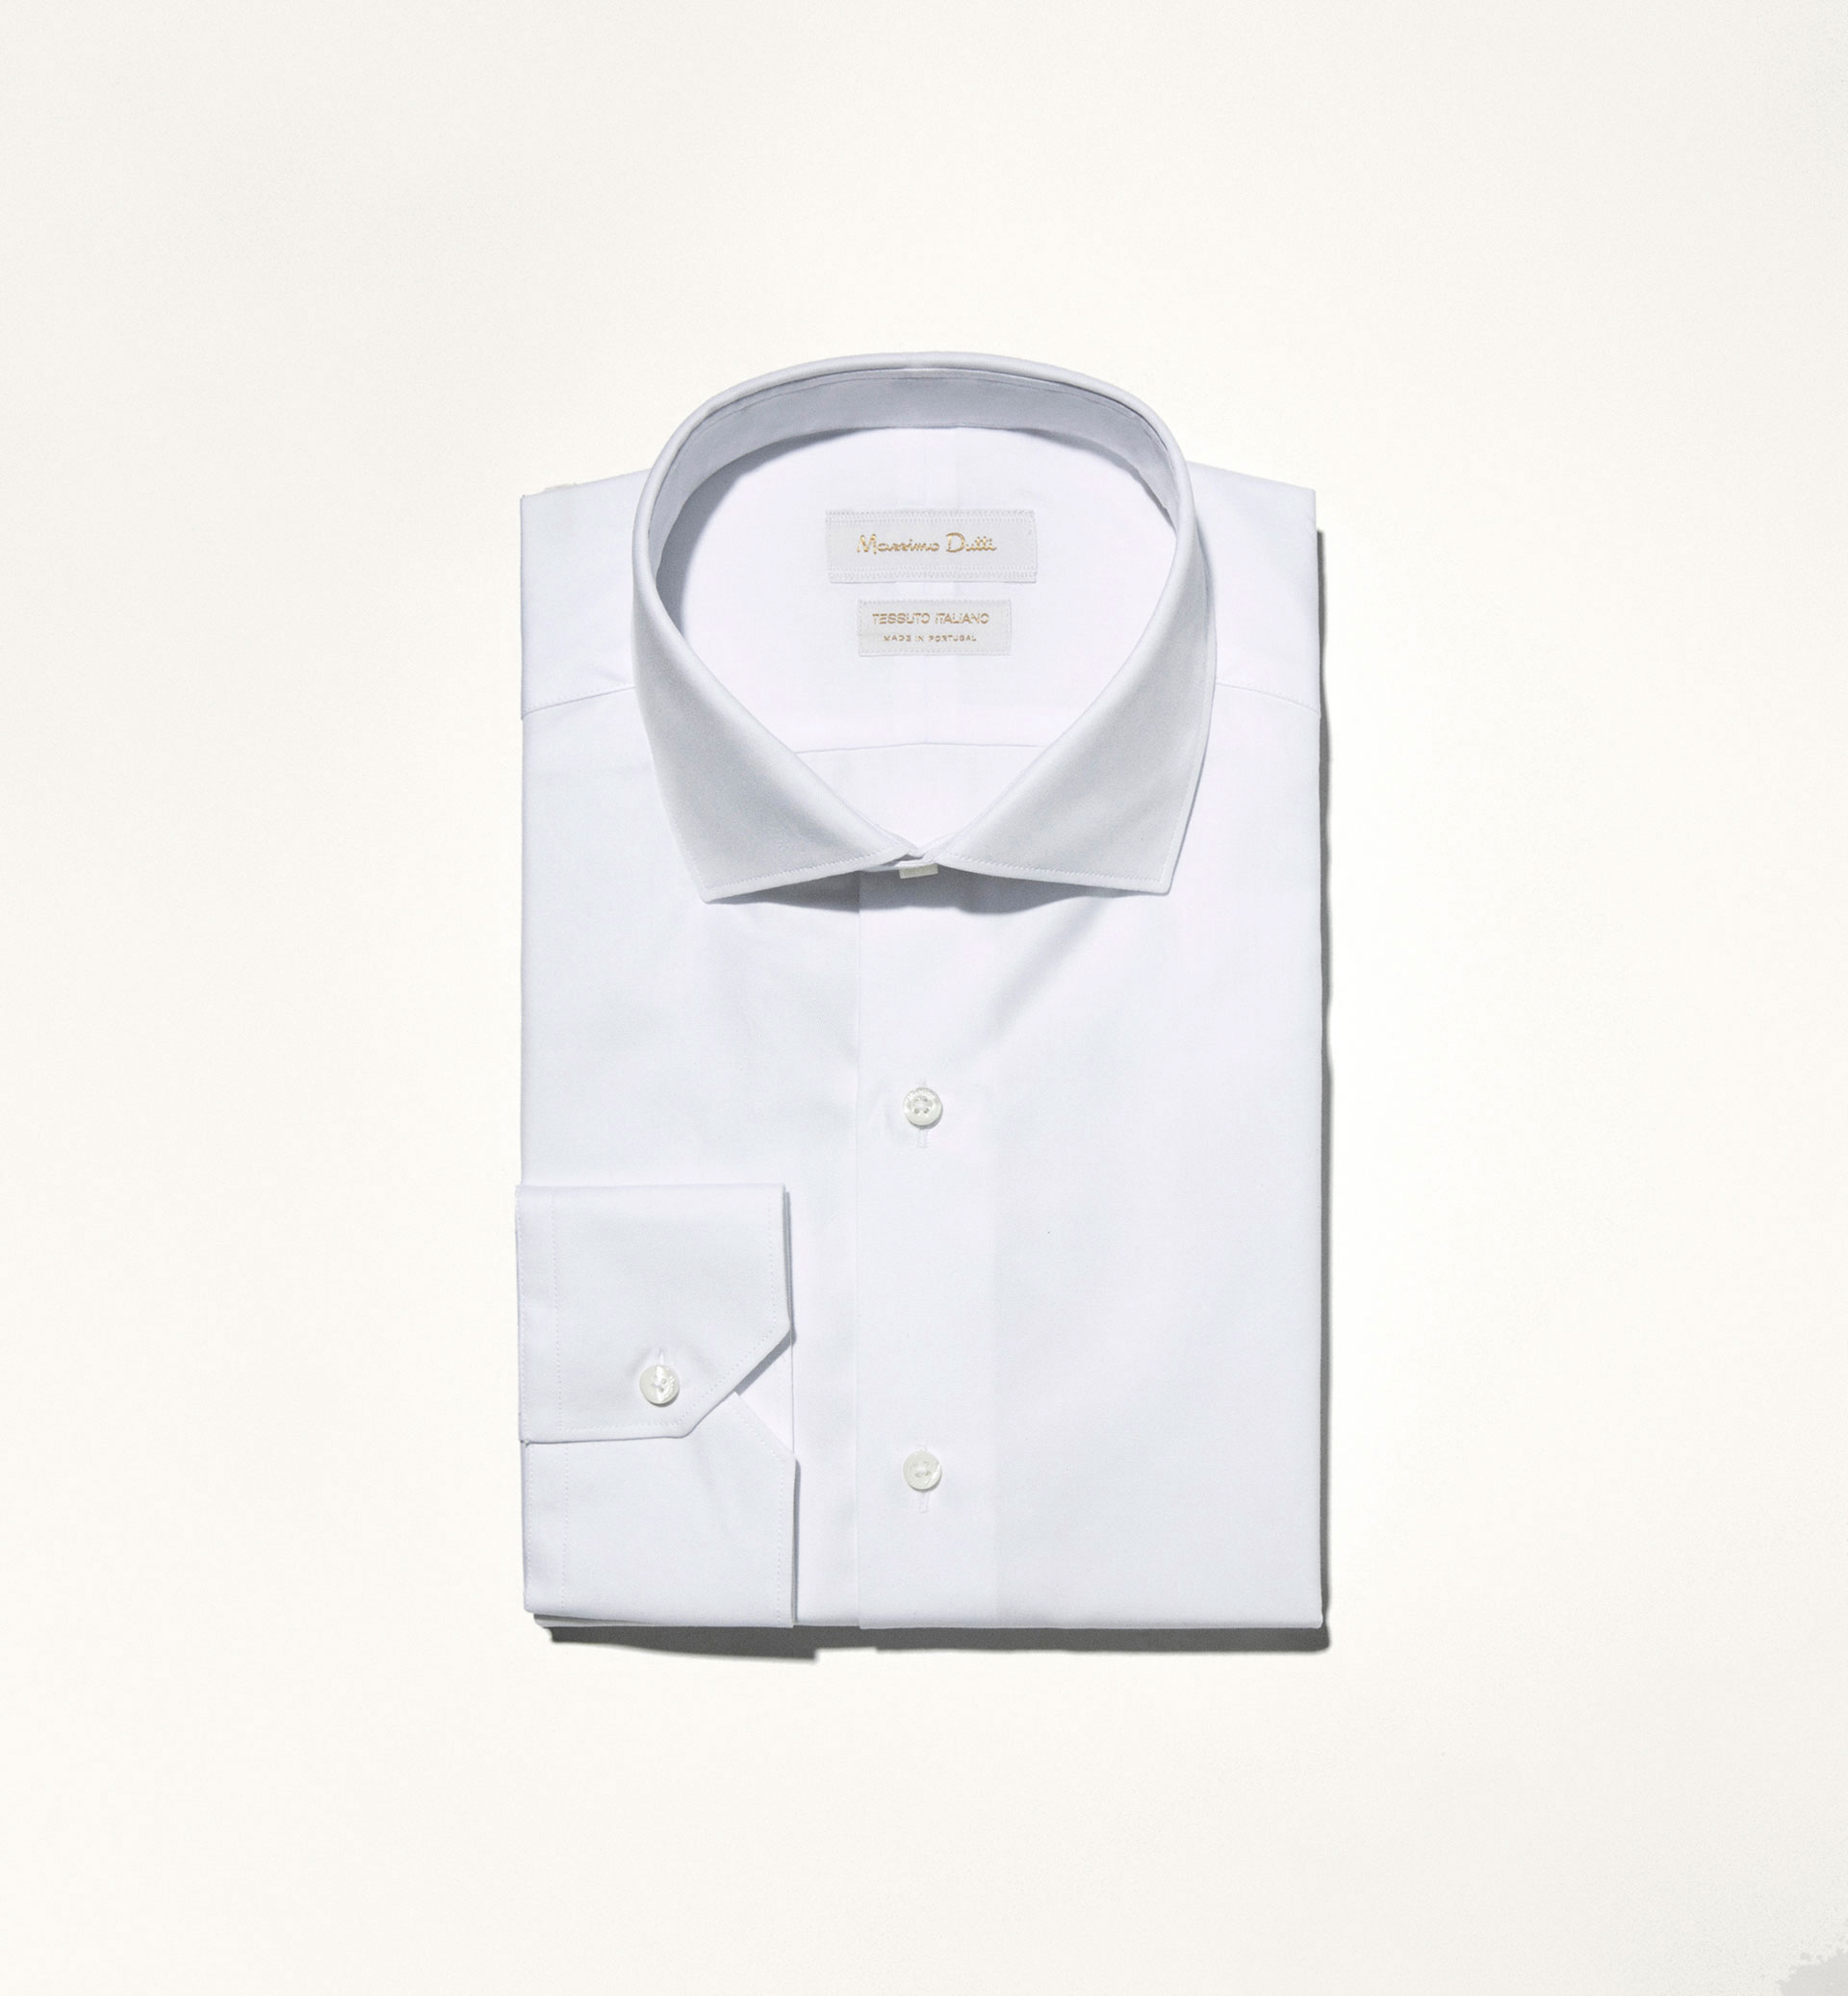 MICRO-DESIGN PLAIN OXFORD SHIRT